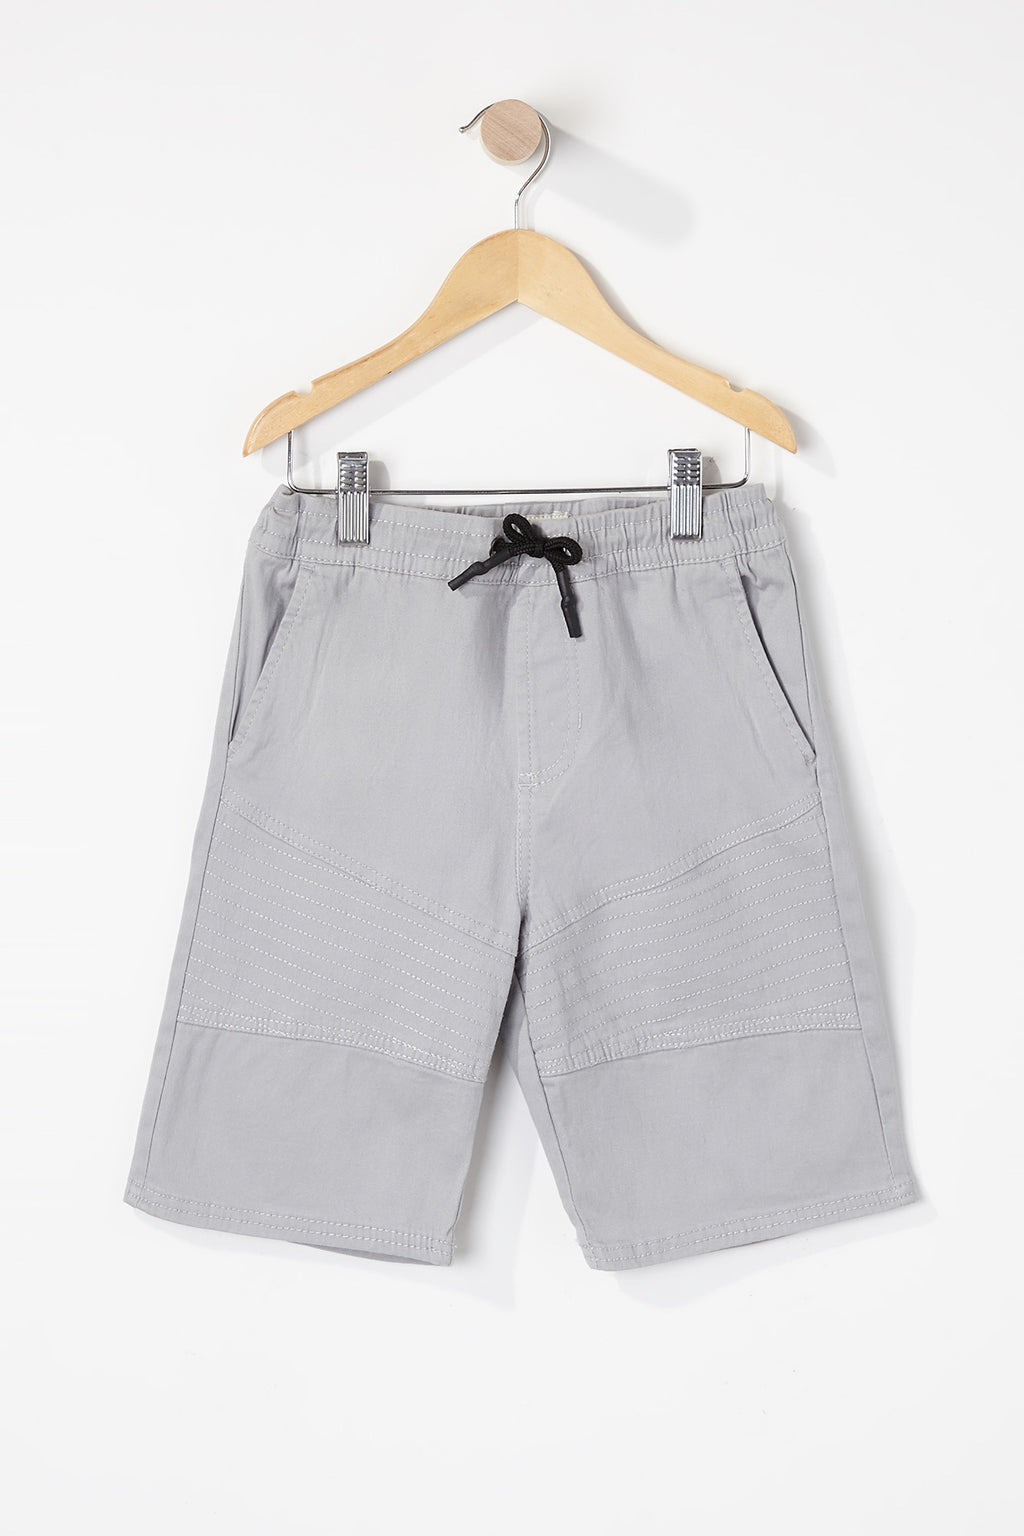 West49 Boys Jogger Shorts